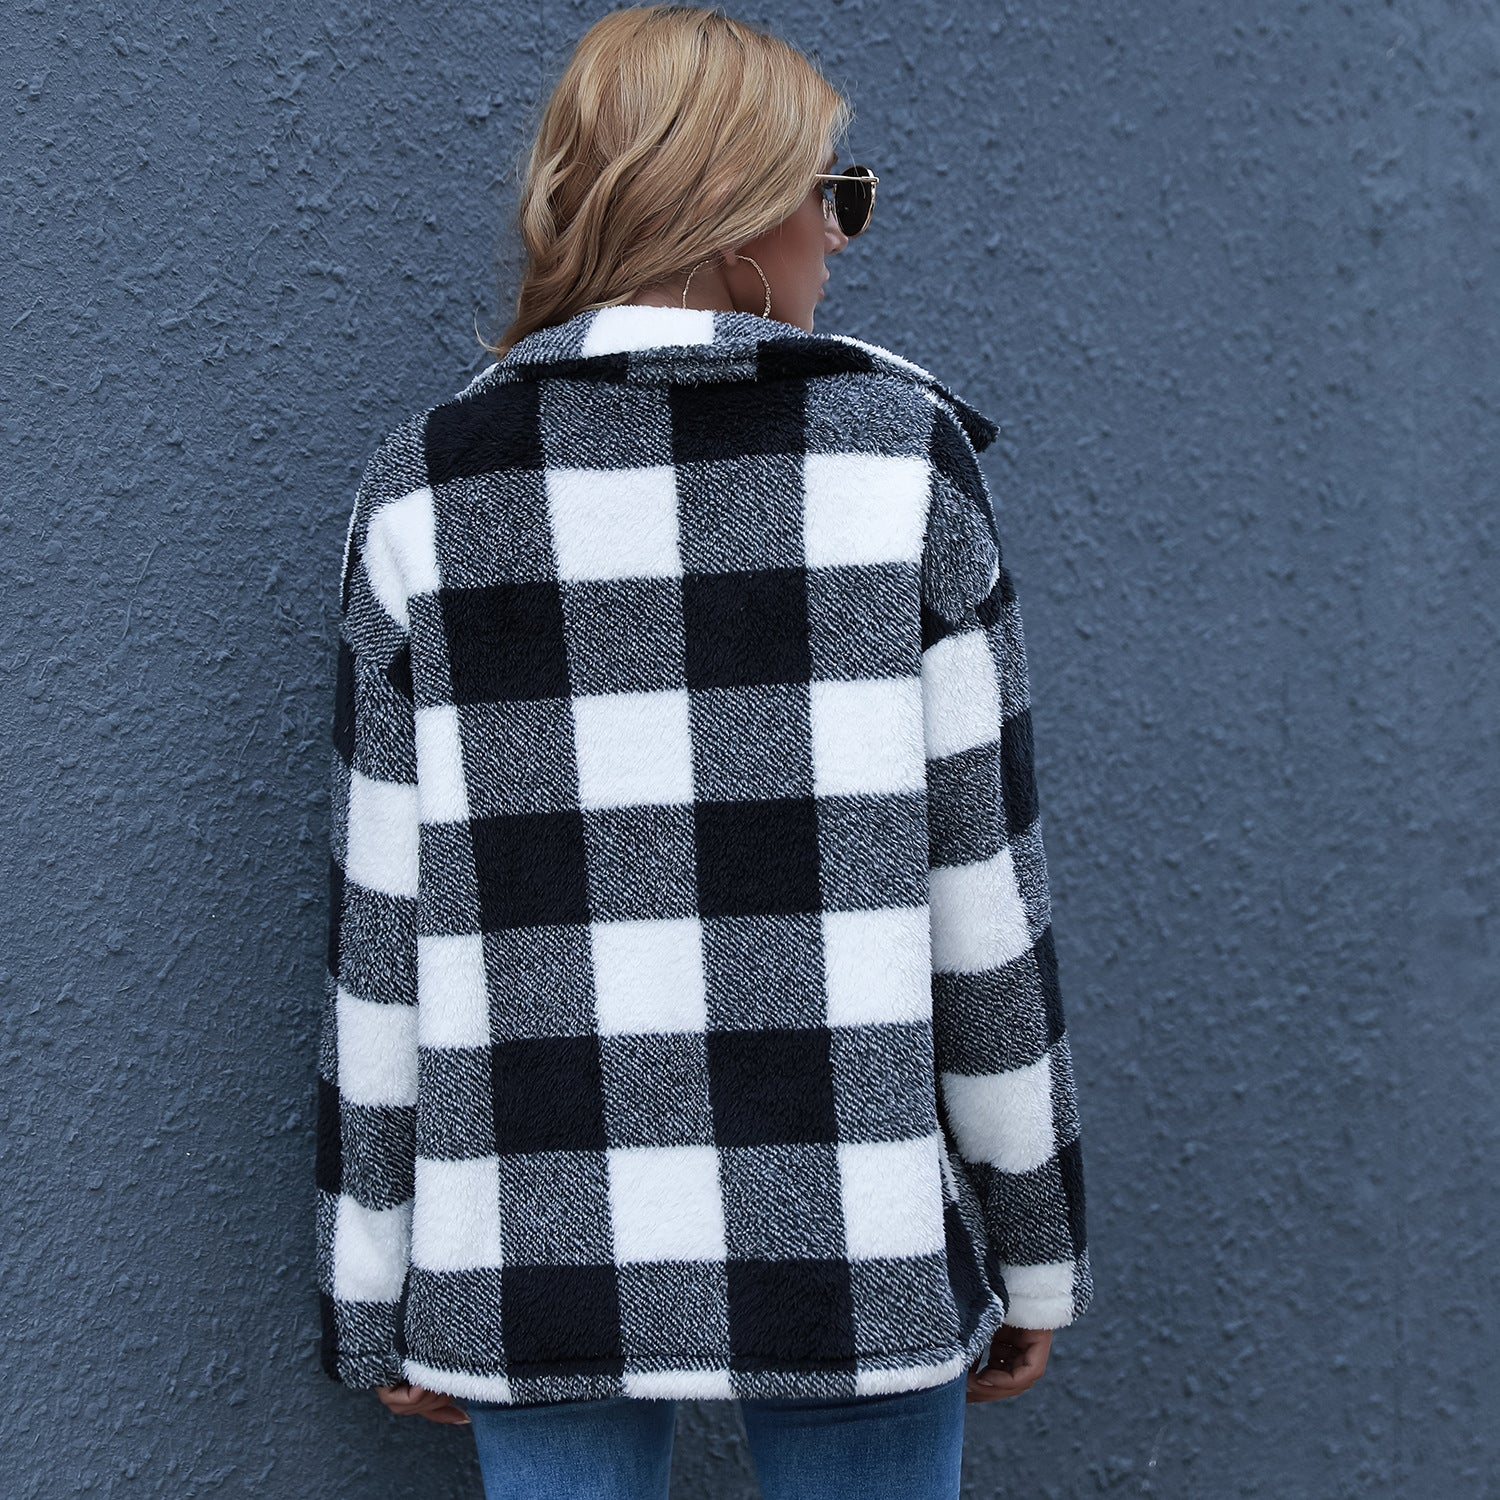 Autumn and Winter New  Woolen Cardigan  Hot Sale Color-Contrast Check Long Shawl Coat Jackets